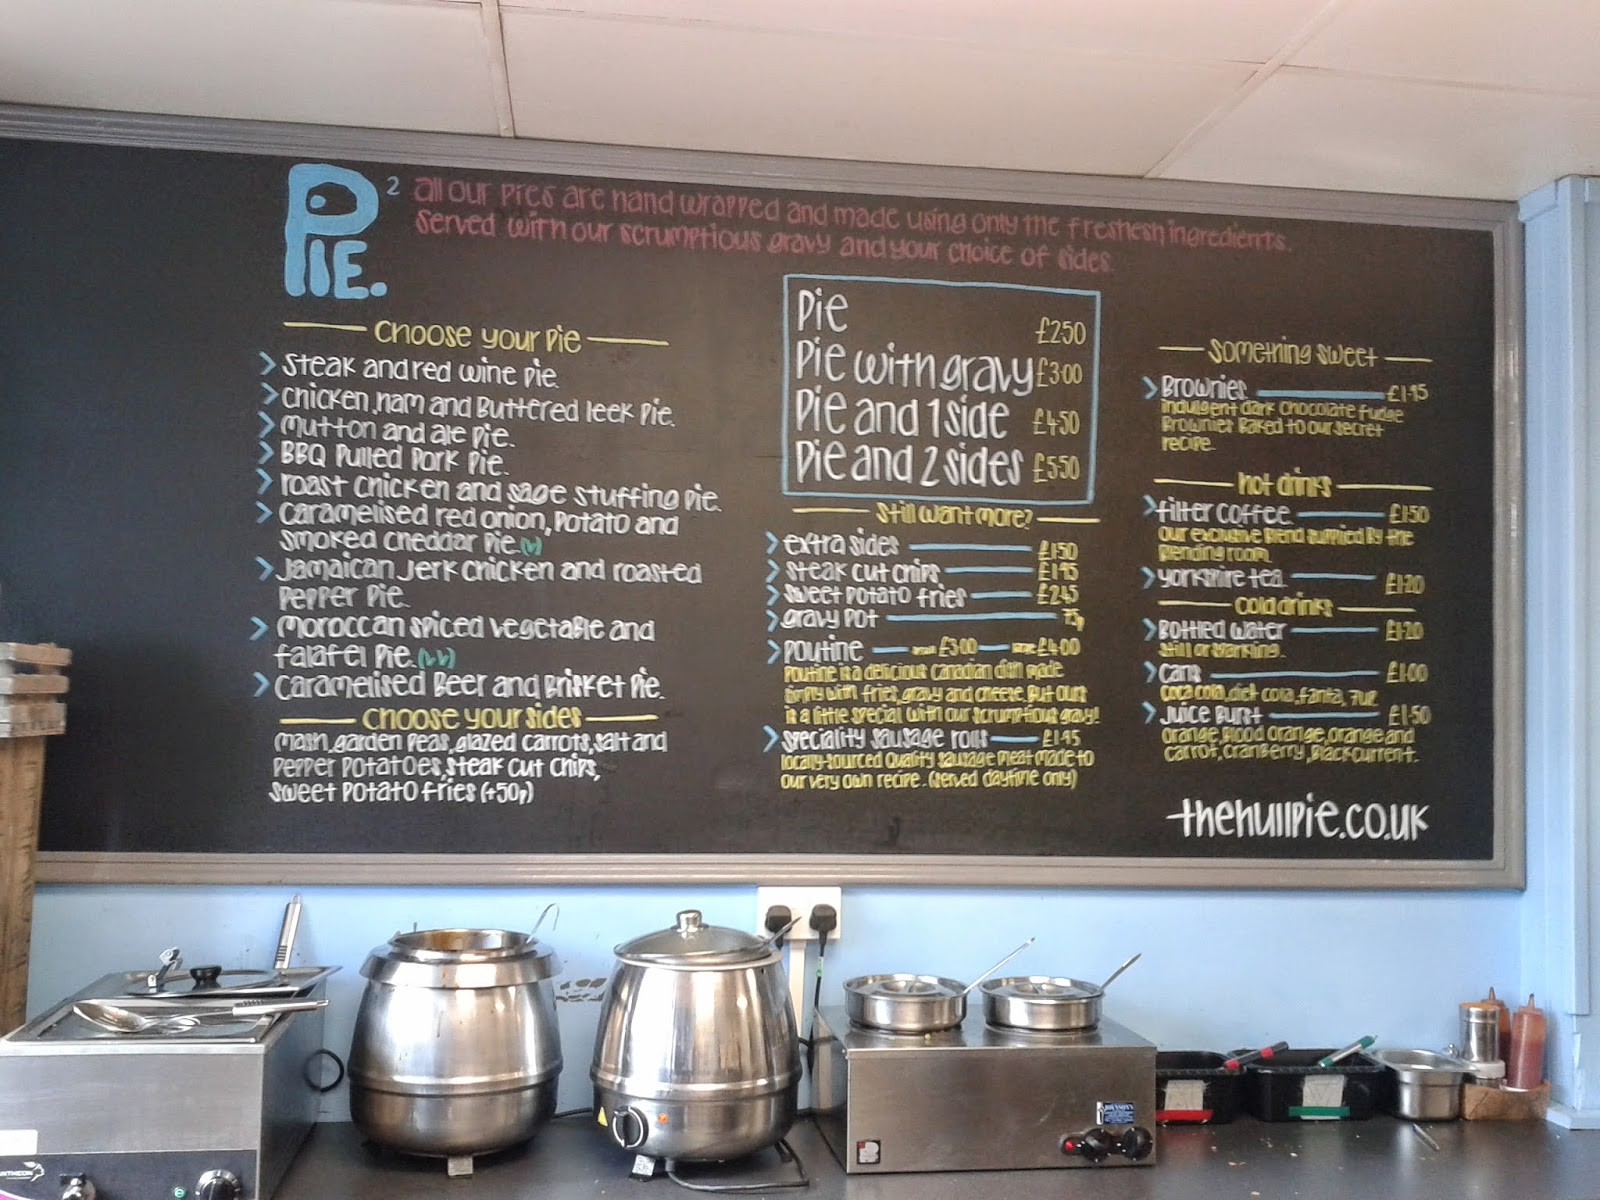 The Hull Pie Menu